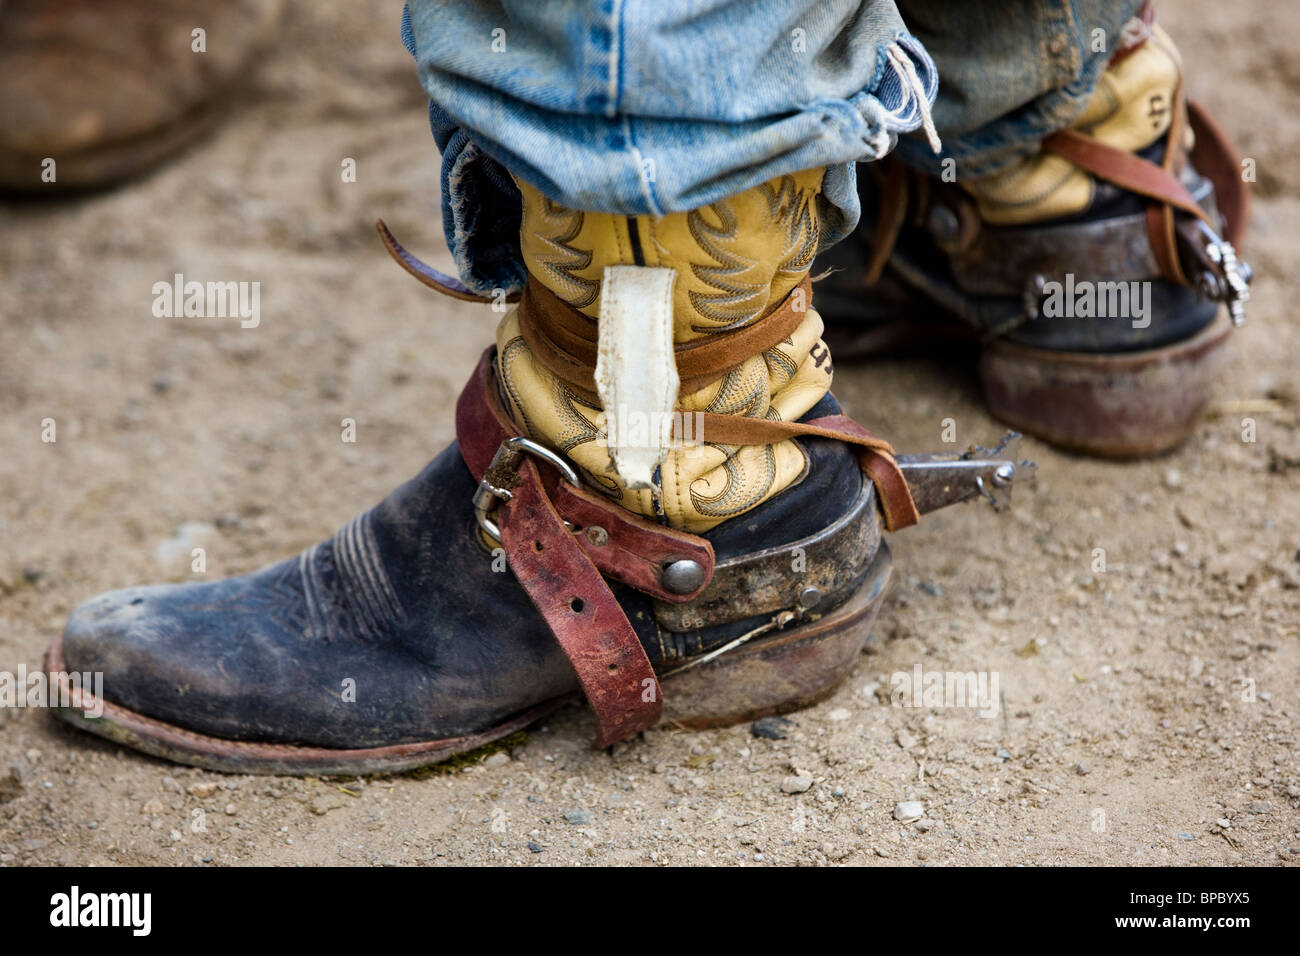 Close-up of cowboy's boots and spurs, Chaffee County Fair & Rodeo - Stock Image